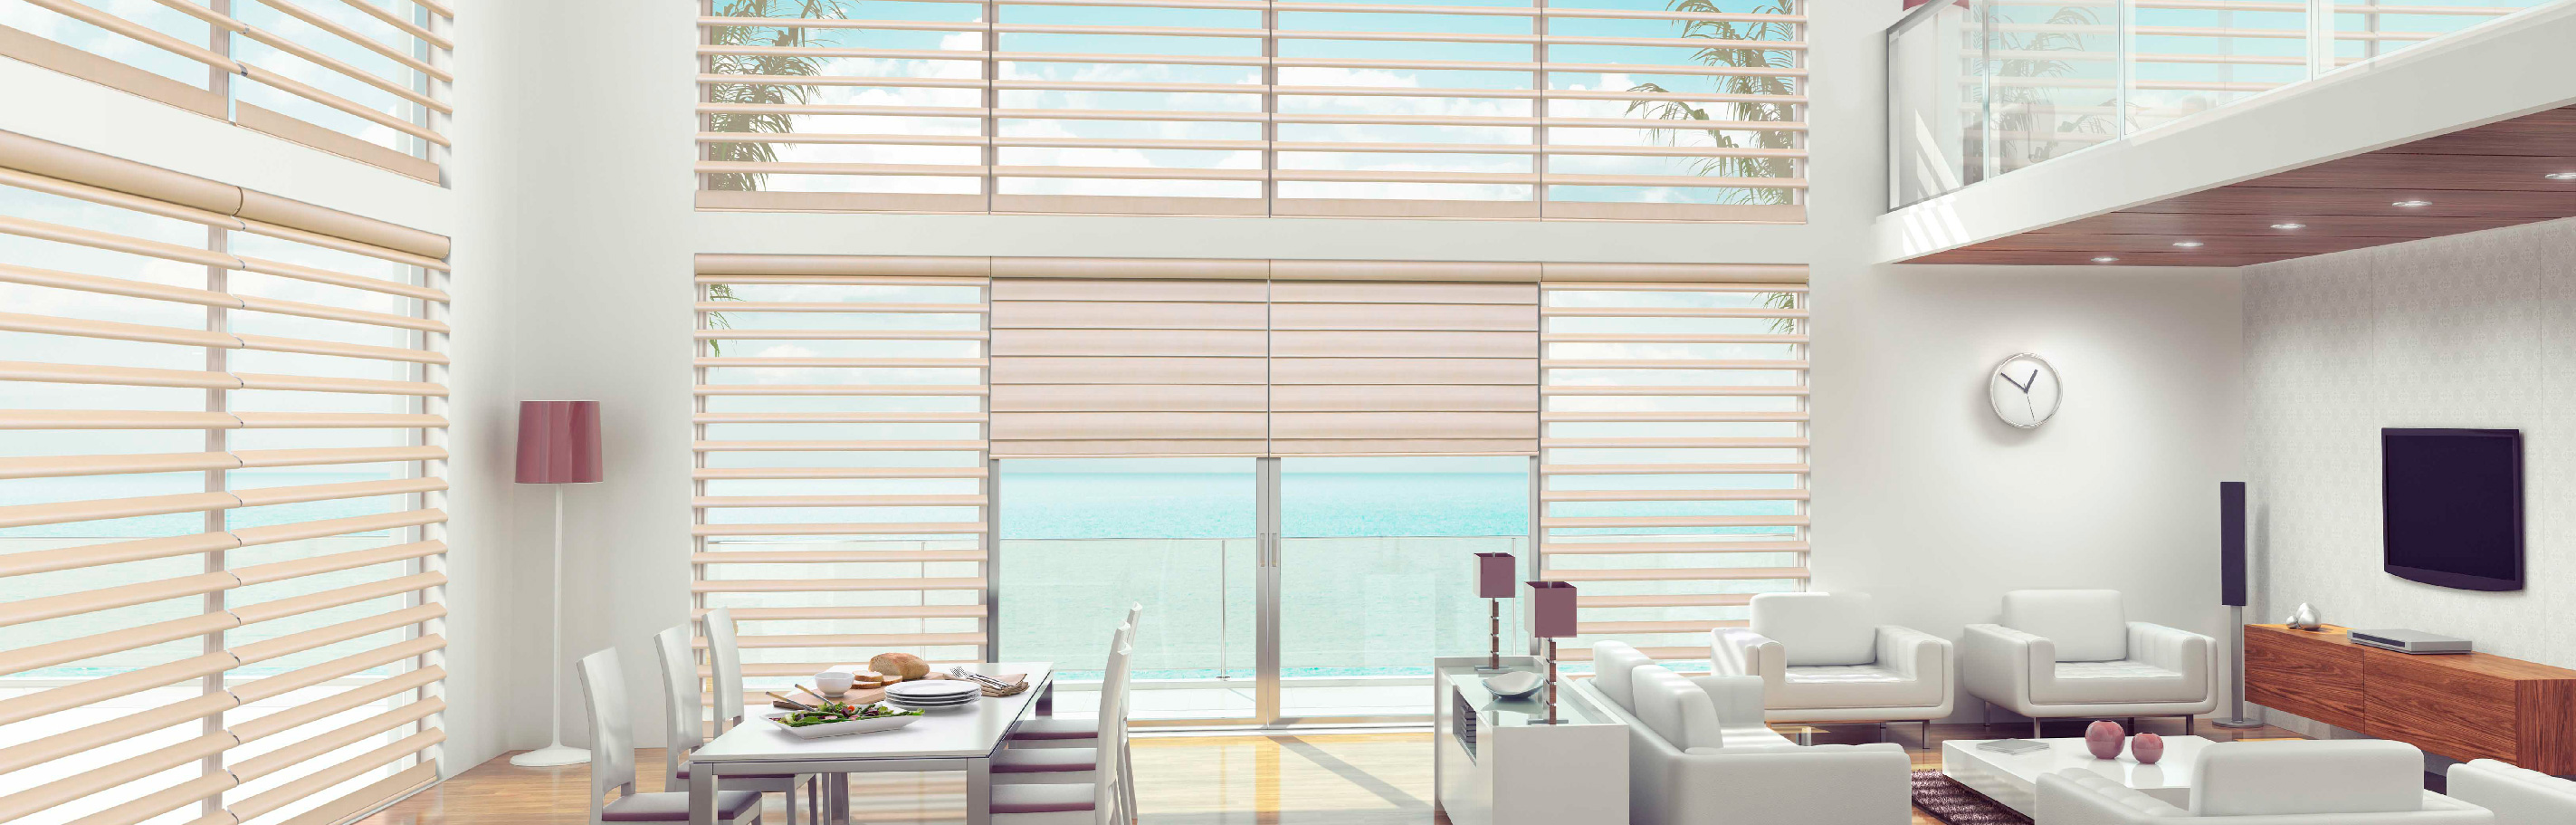 Luxaflex - Products - Softshades and Fabrics - Pirouette Shadings Bottom 2